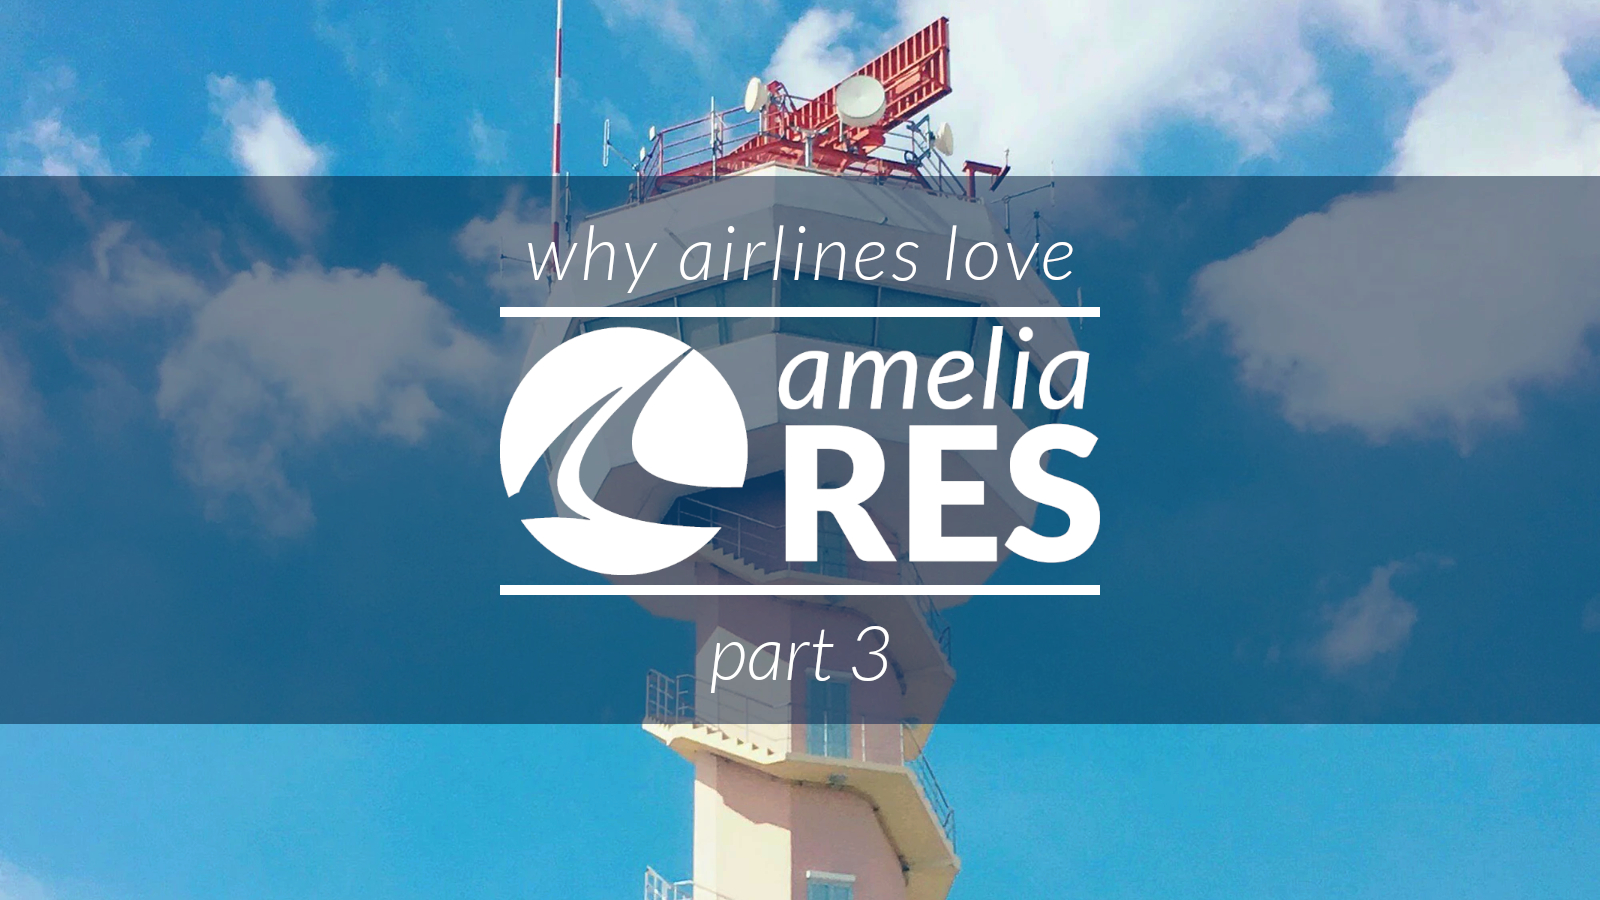 Blog & Social Content - Why Airlines Love ameliaRES, Part 03 (1,600 x 900)